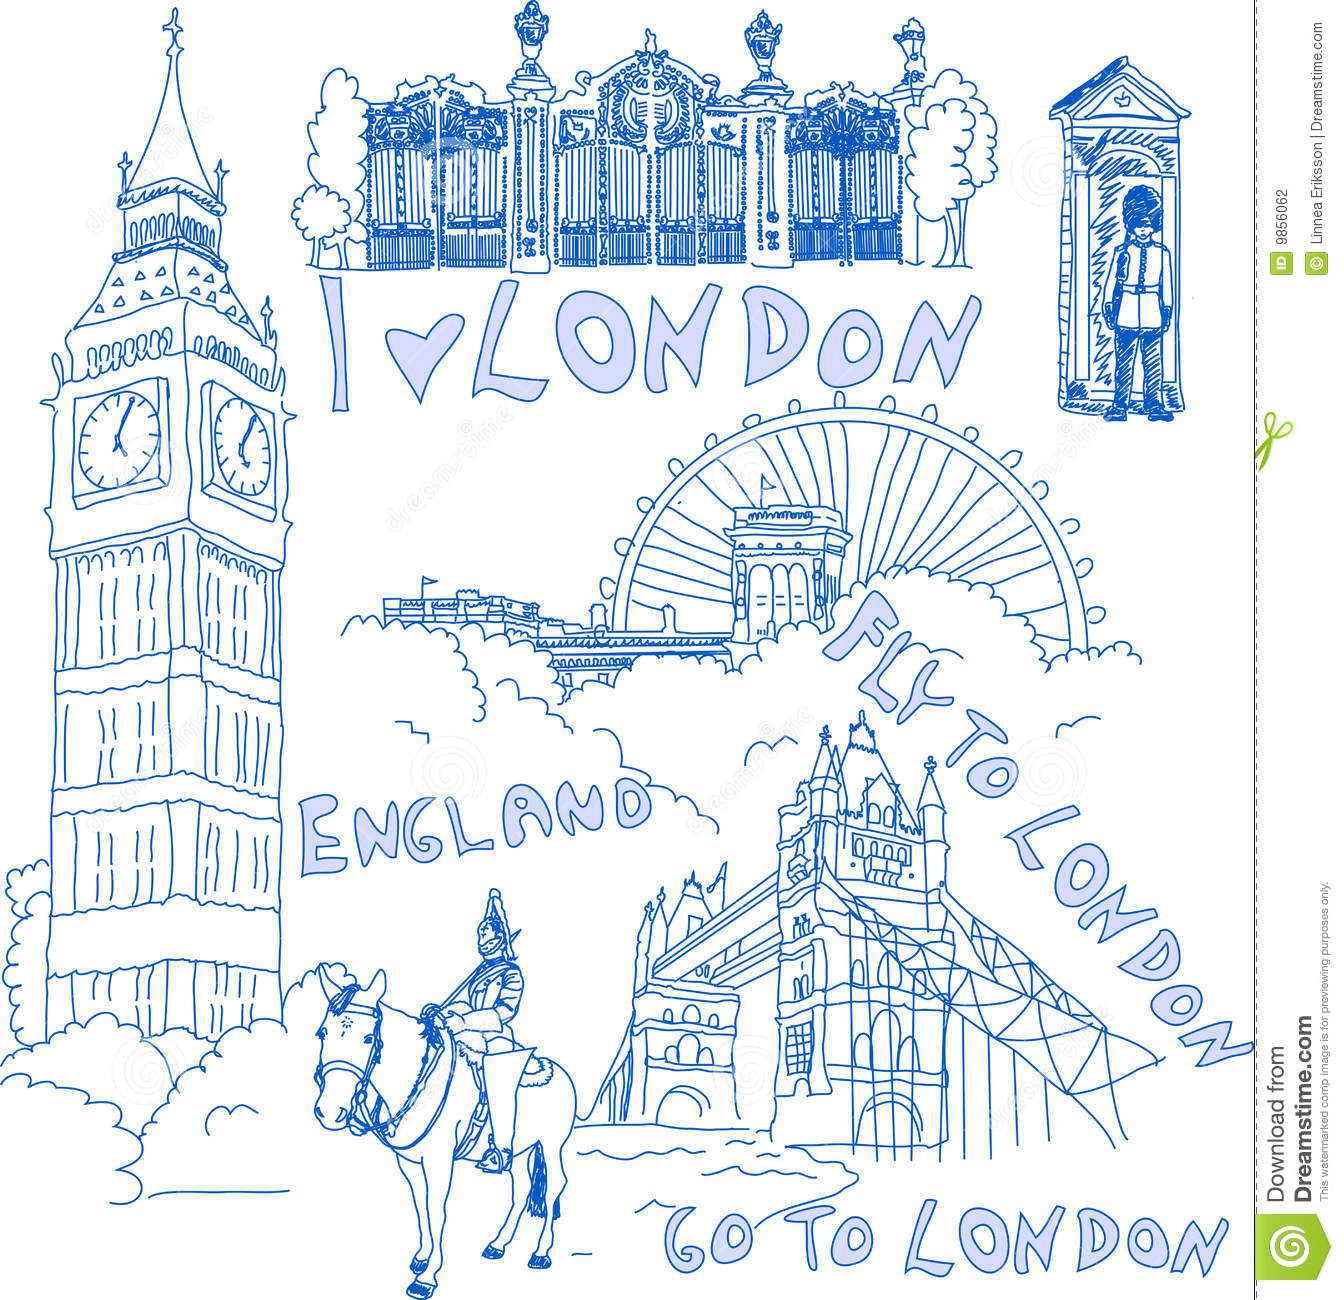 Cute Doodles Of Typical London Sights Available Both As Jpeg And